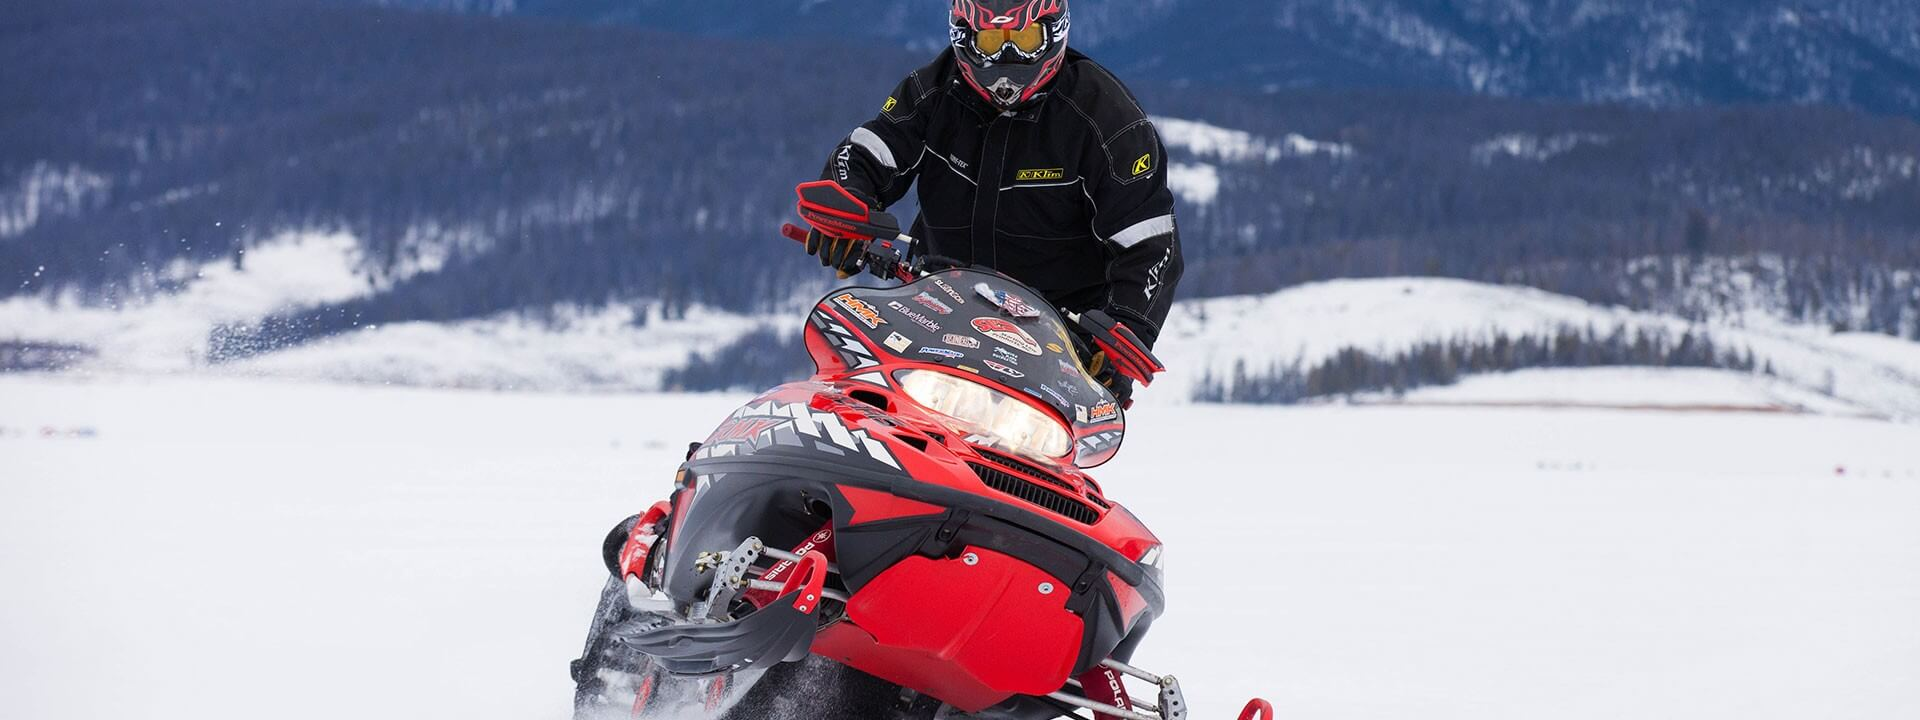 Beginners Guide To Snowmobiling Trip Ideas Inspiration Visit Grand County Colorado